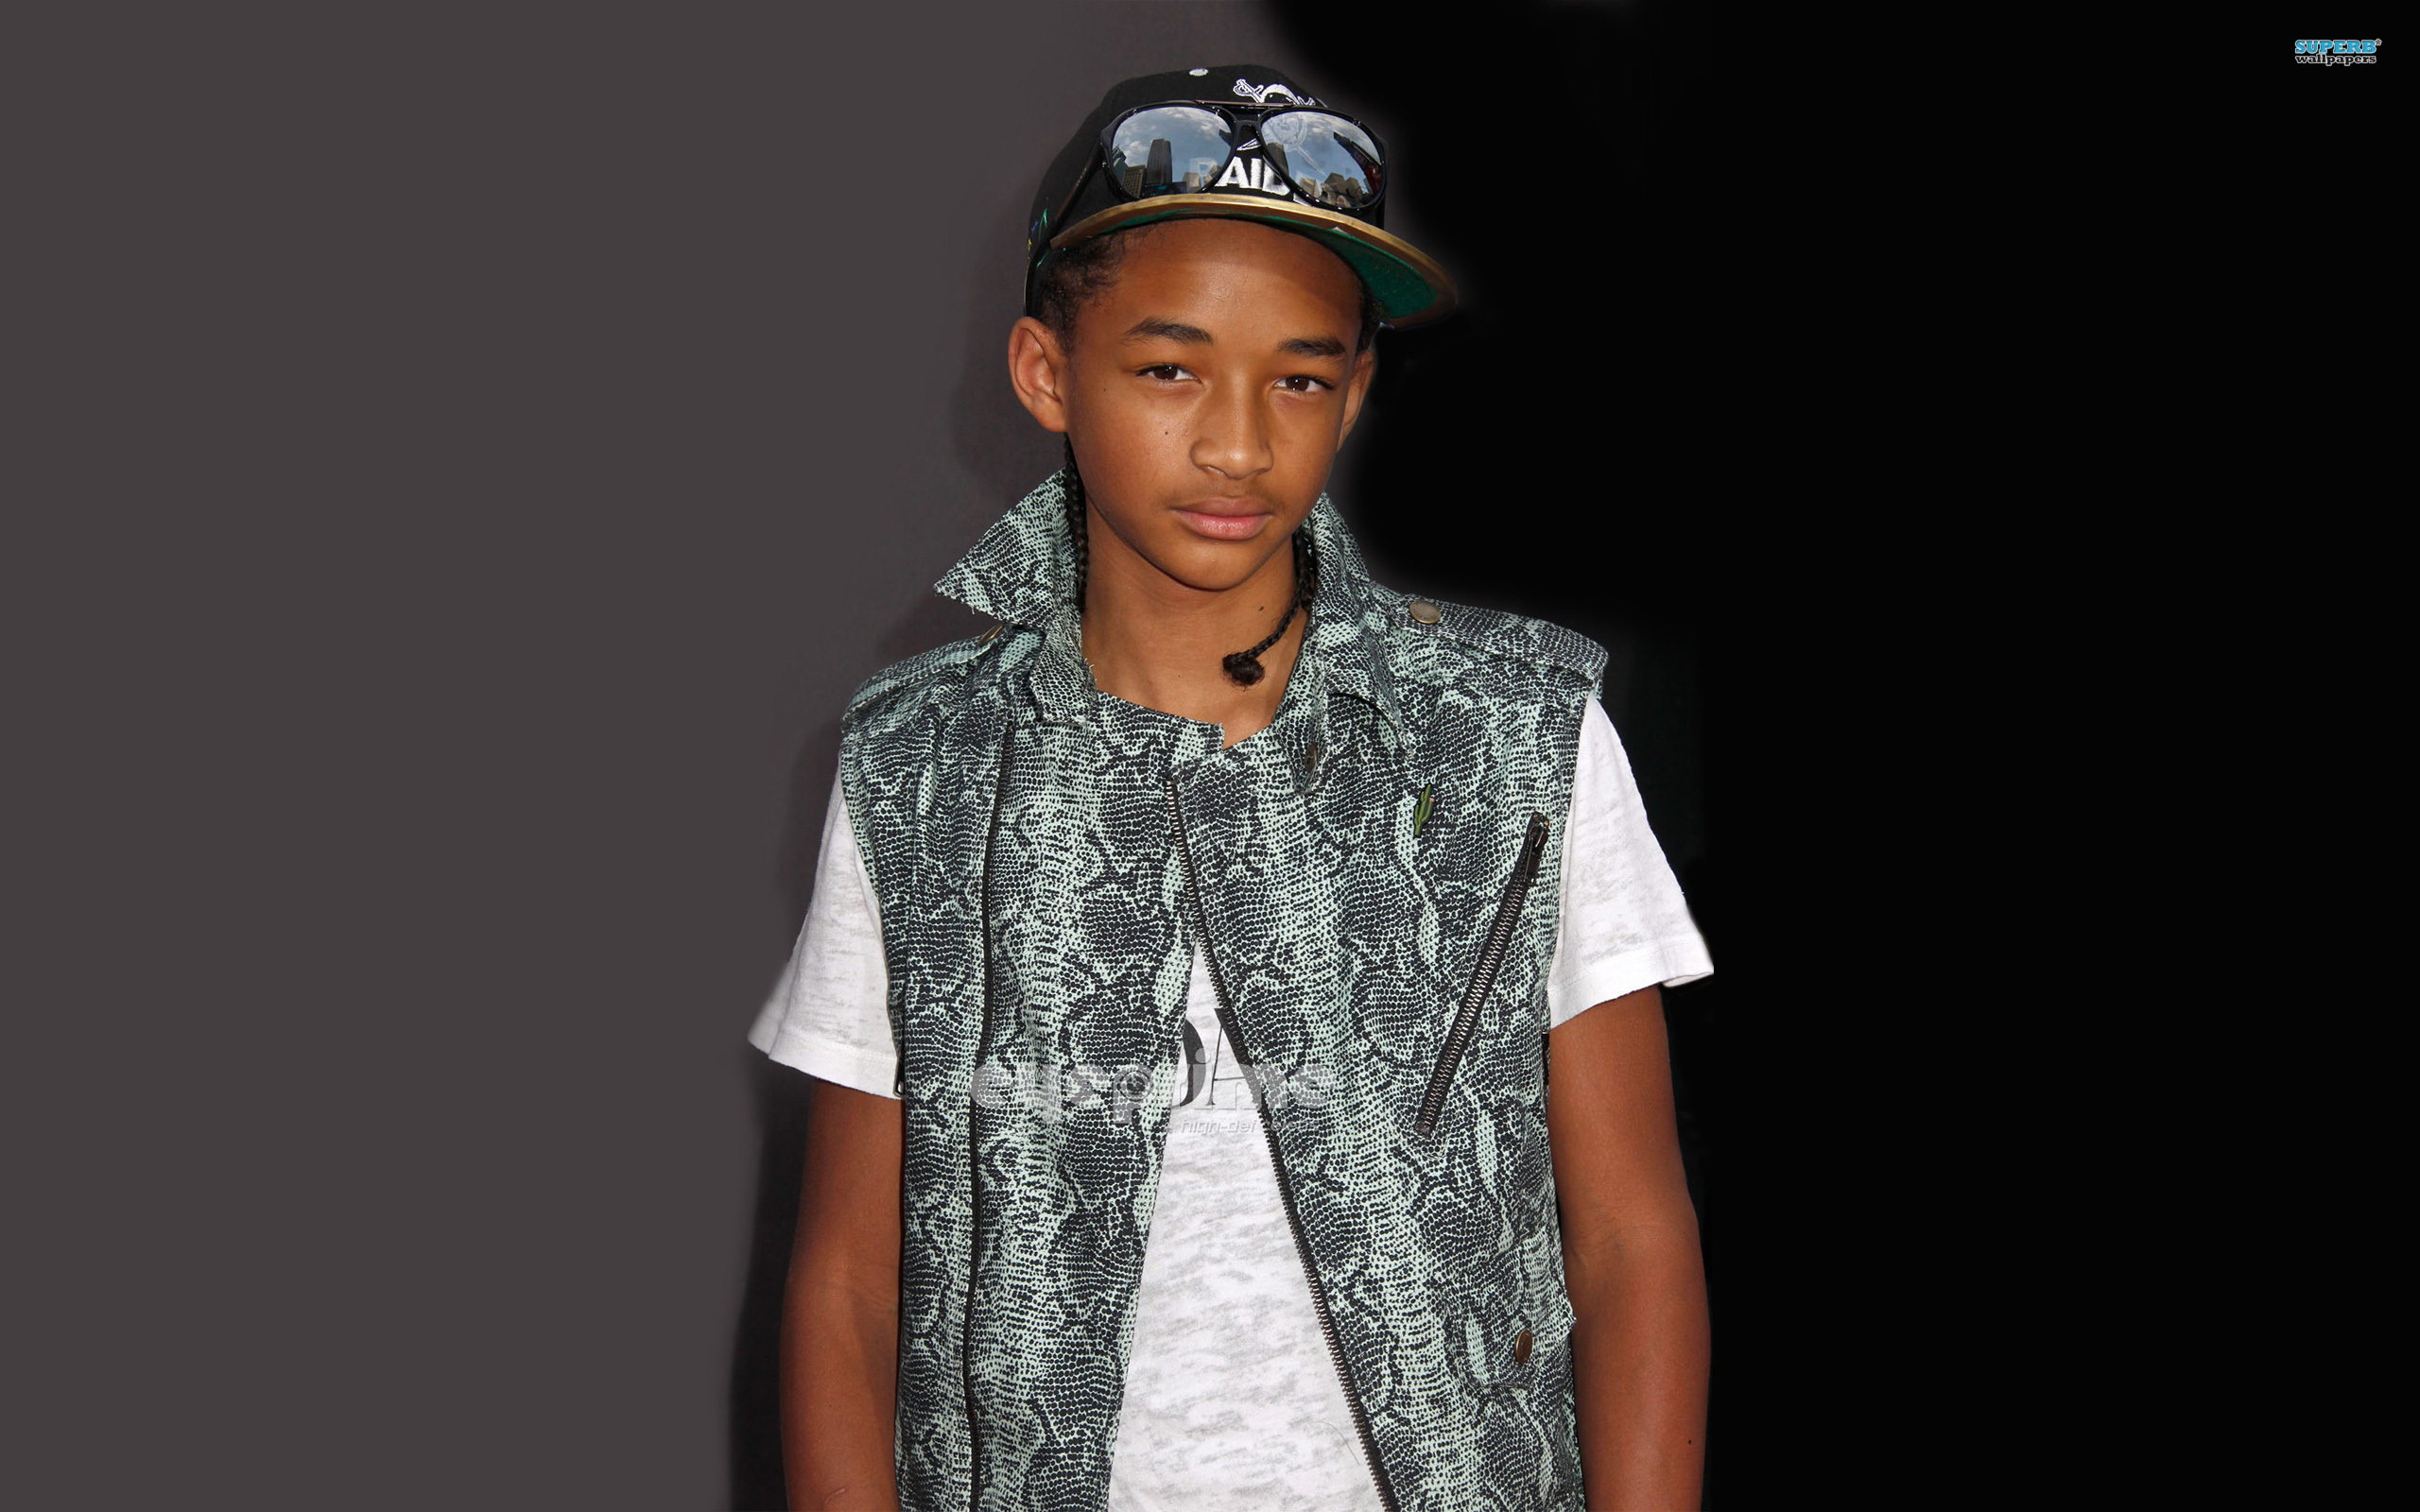 Jaden Smith Wallpapers High Resolution and Quality Download